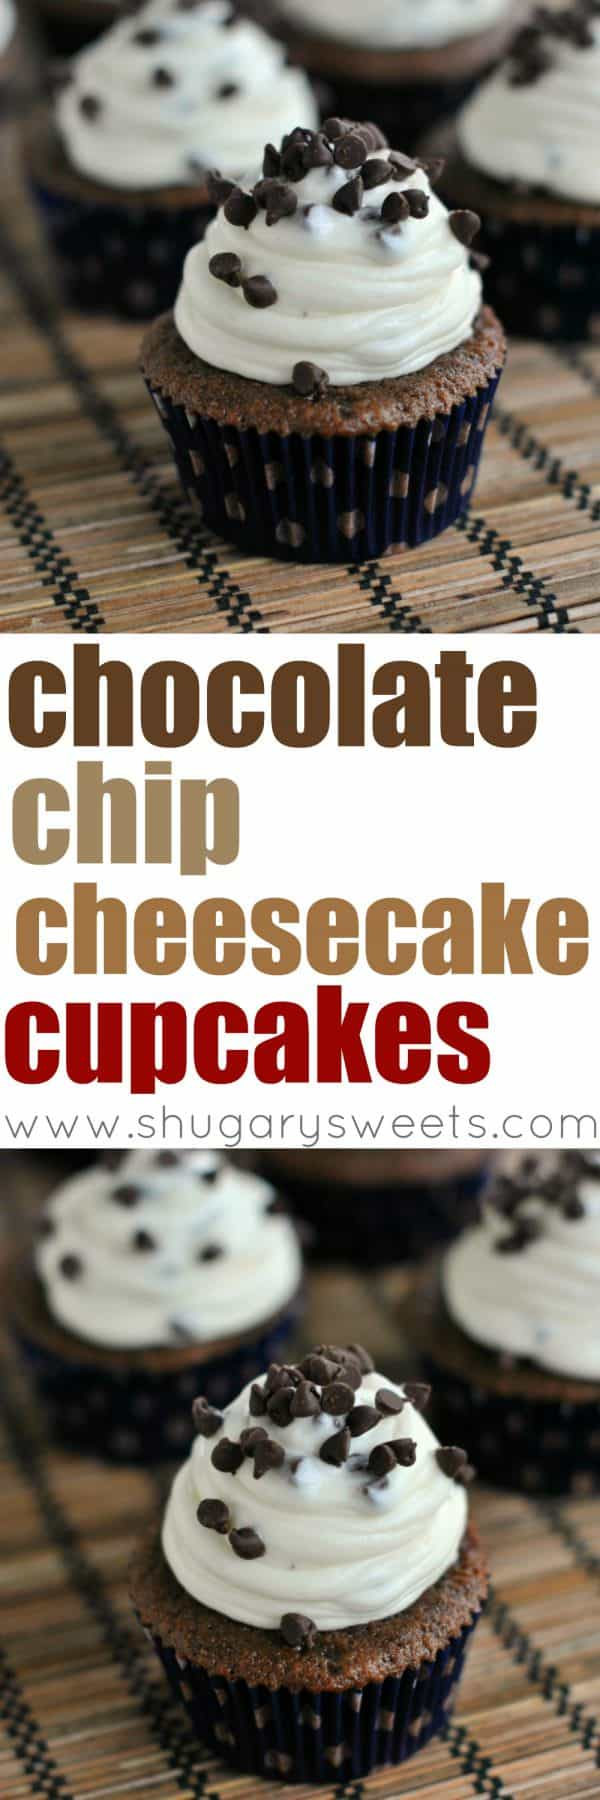 Rich Chocolate Cupcakes topped with a creamy Chocolate Chip Cheesecake frosting! Decadent, from scratch, and delicious!